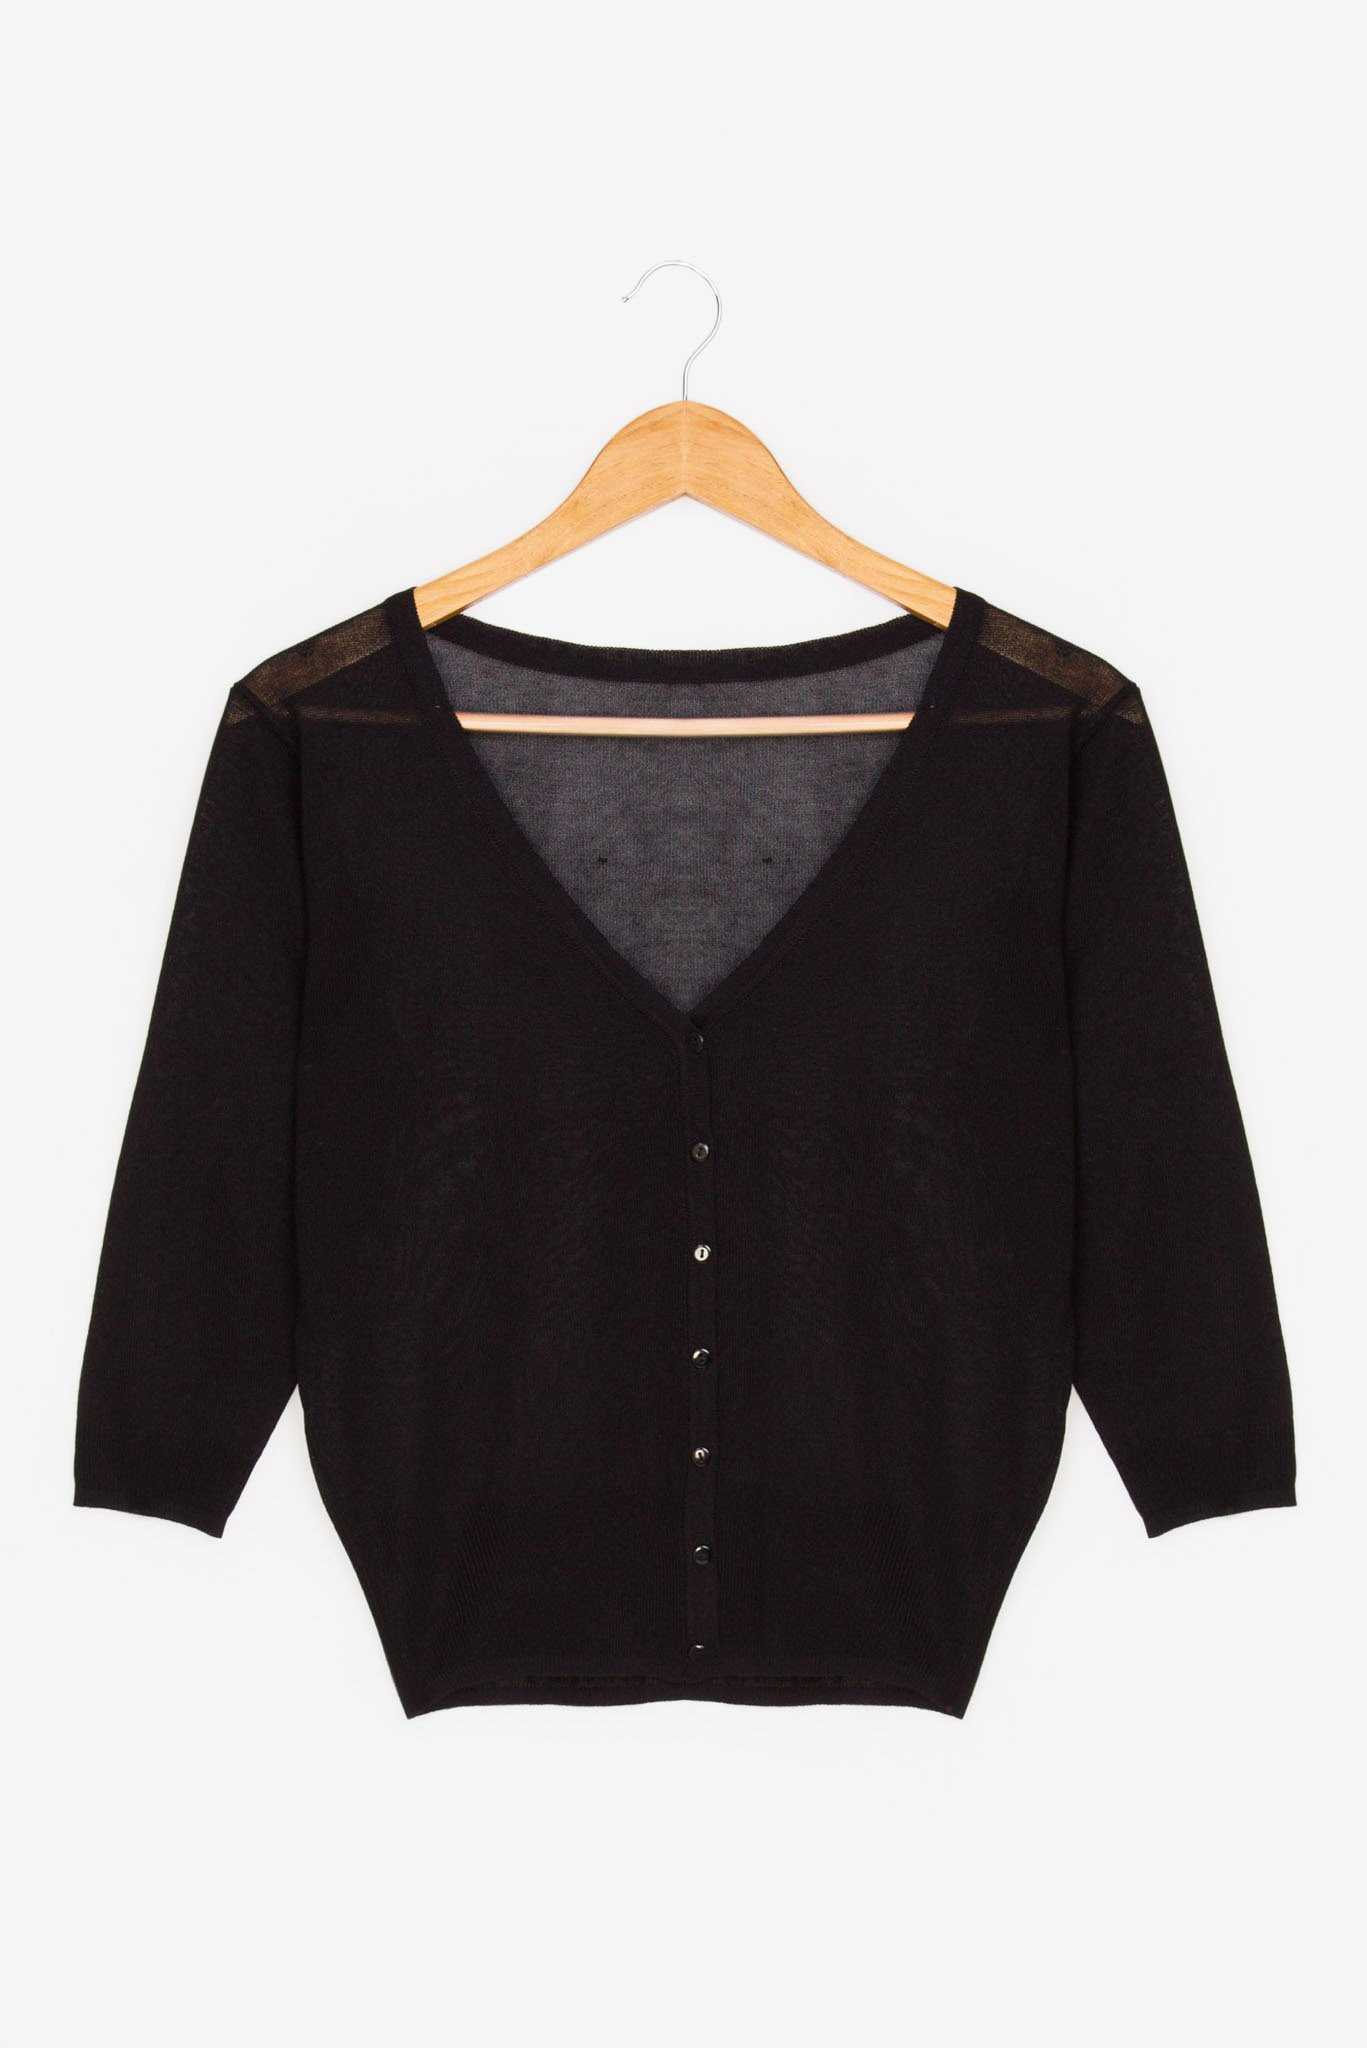 Basic Cardigan - Black | Raw Orange